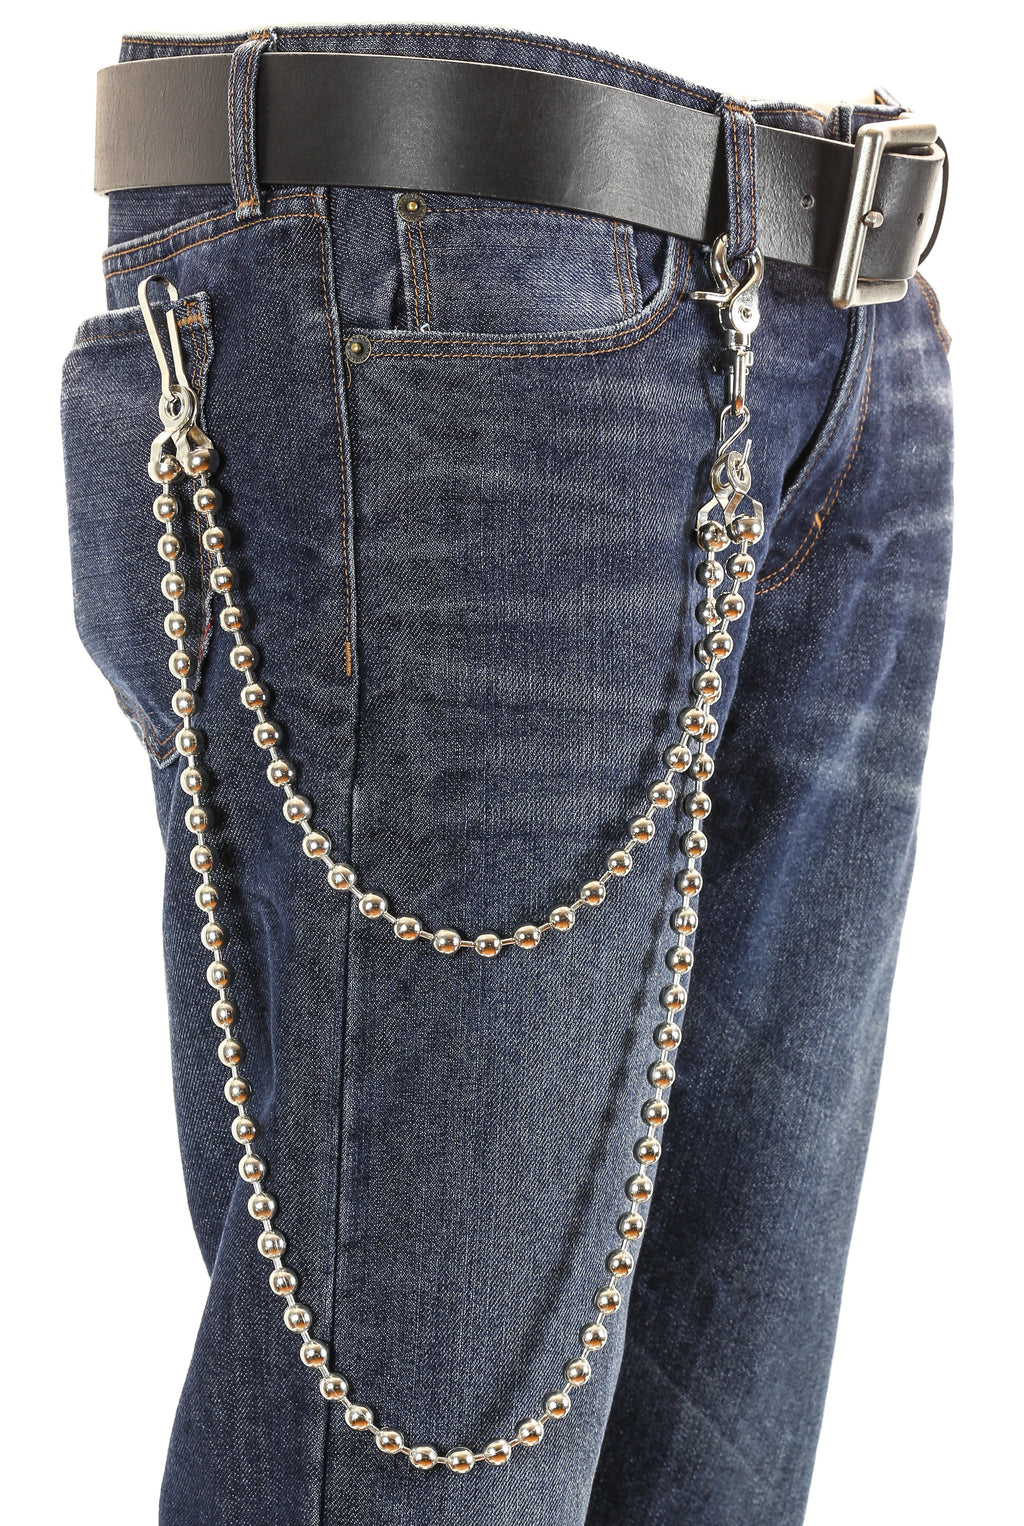 2 Strands Silver Long Wallet Chains Round Metal Links KeyChain